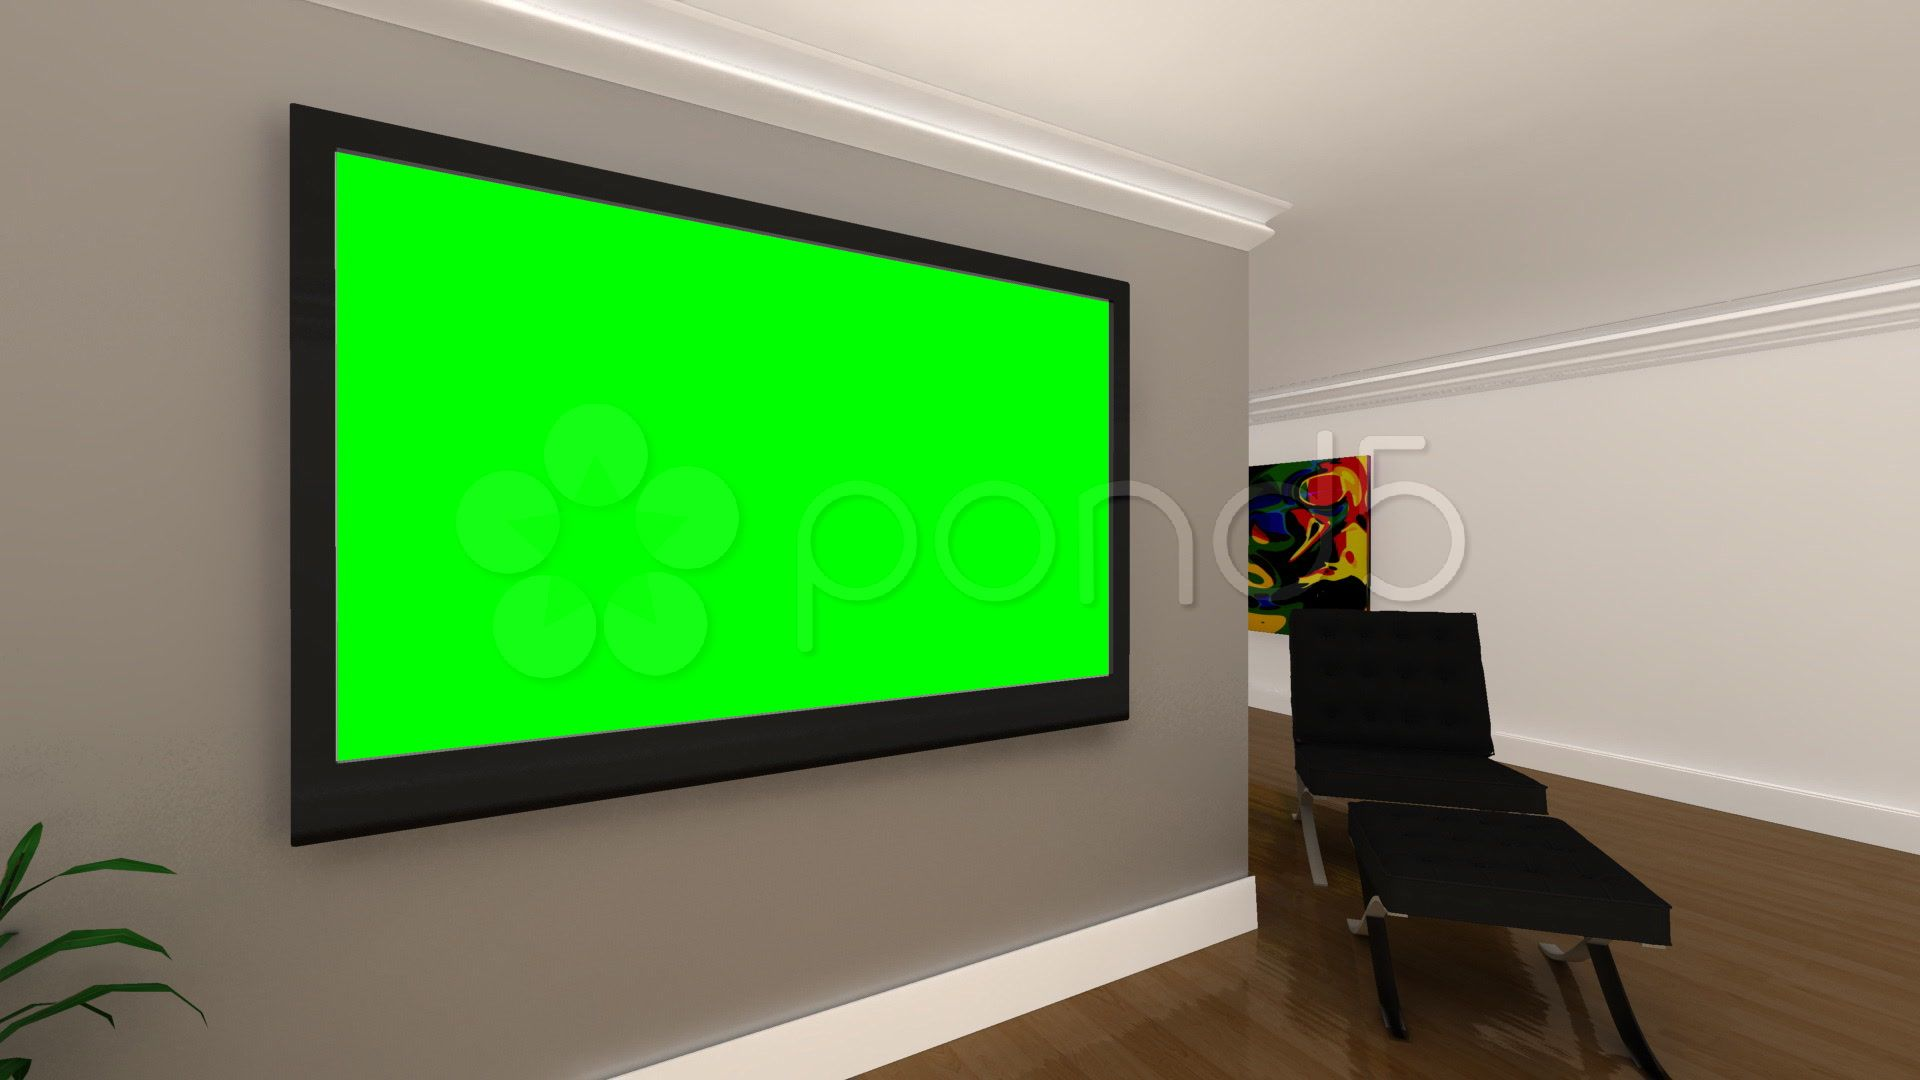 Green Screen Background Interior Office Stock Footage Ad Background Screen Interior Green Green Screen Backgrounds Greenscreen Green Screen Backdrop